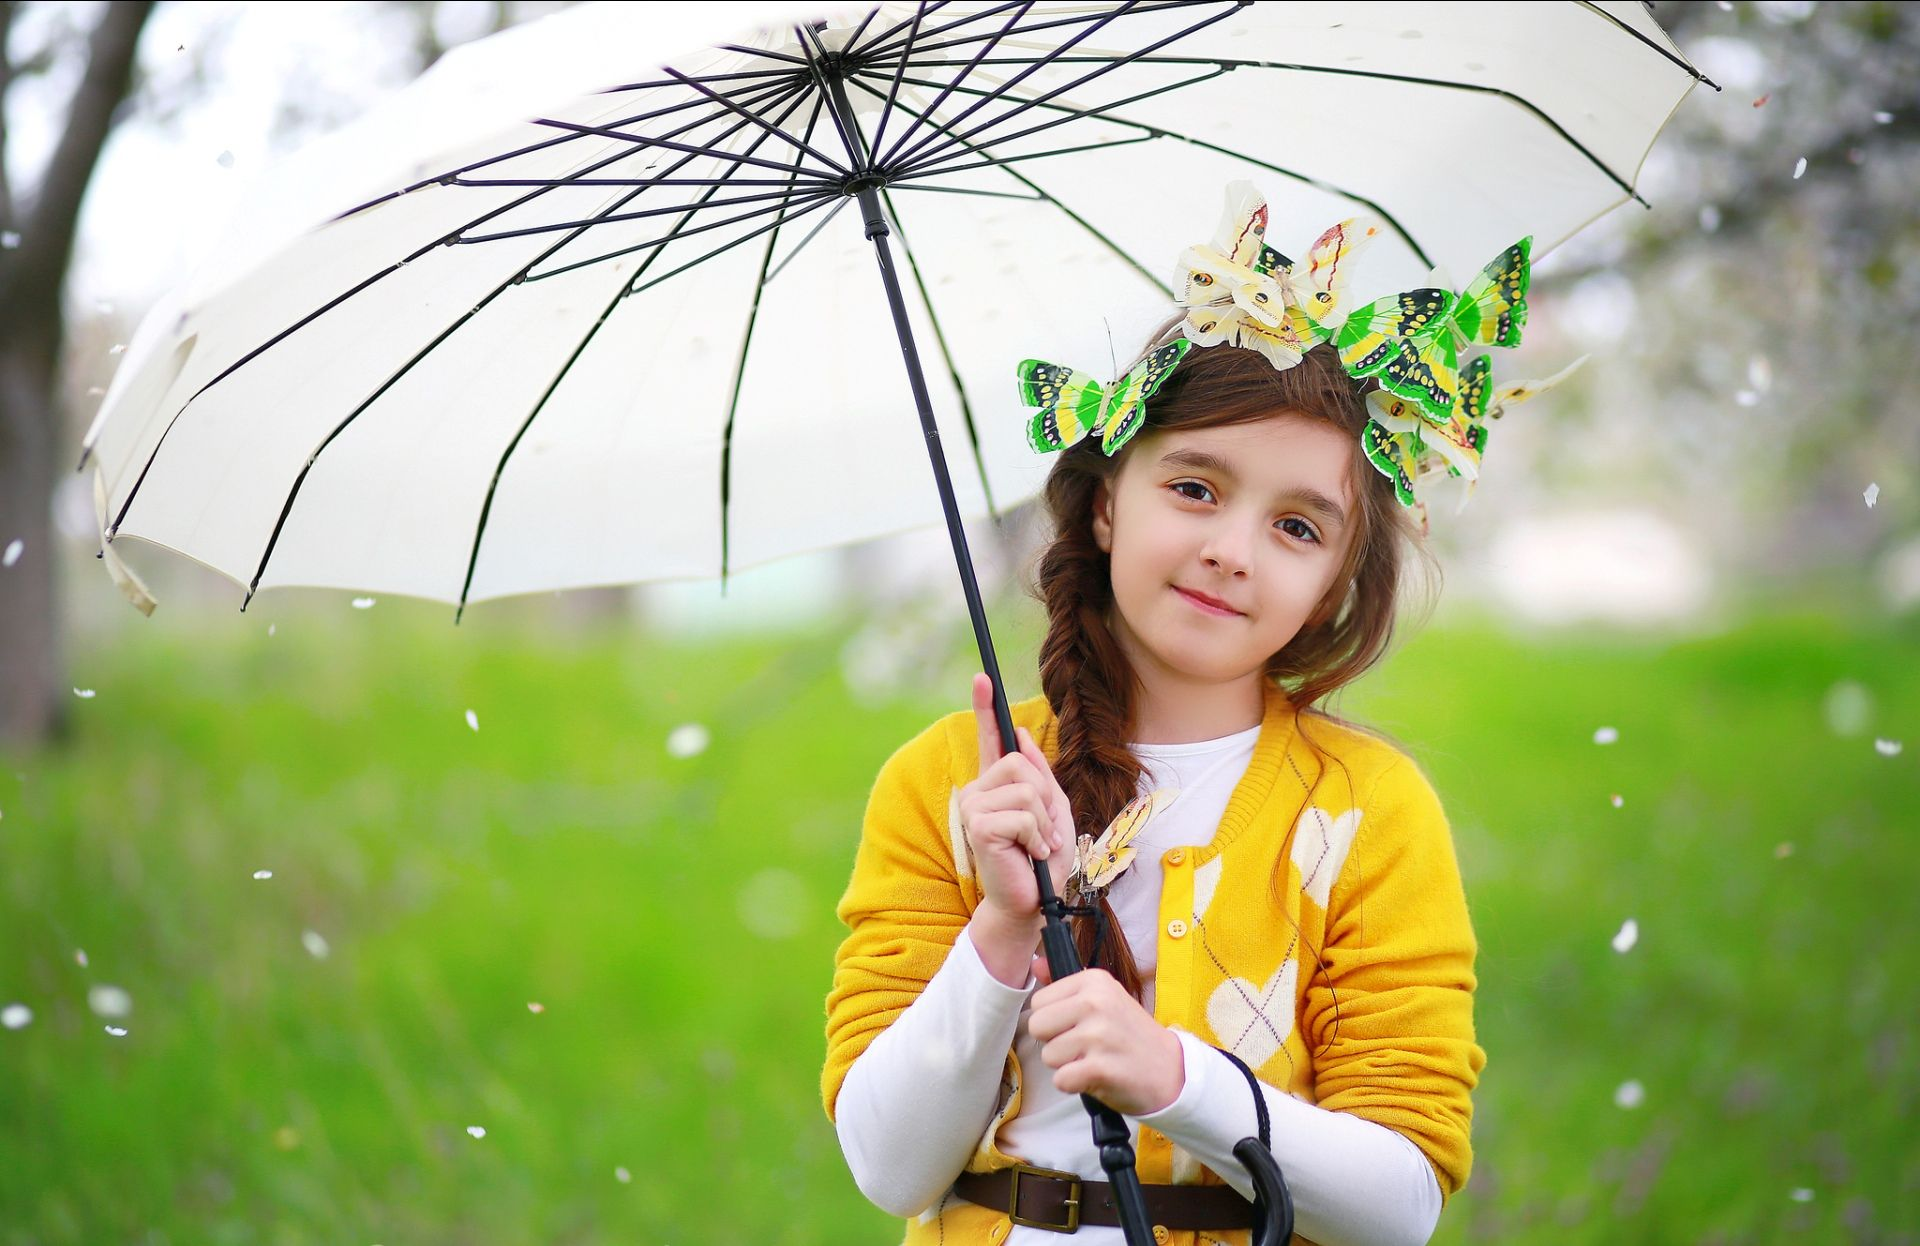 Cute Baby Pic With Umbrella Photography